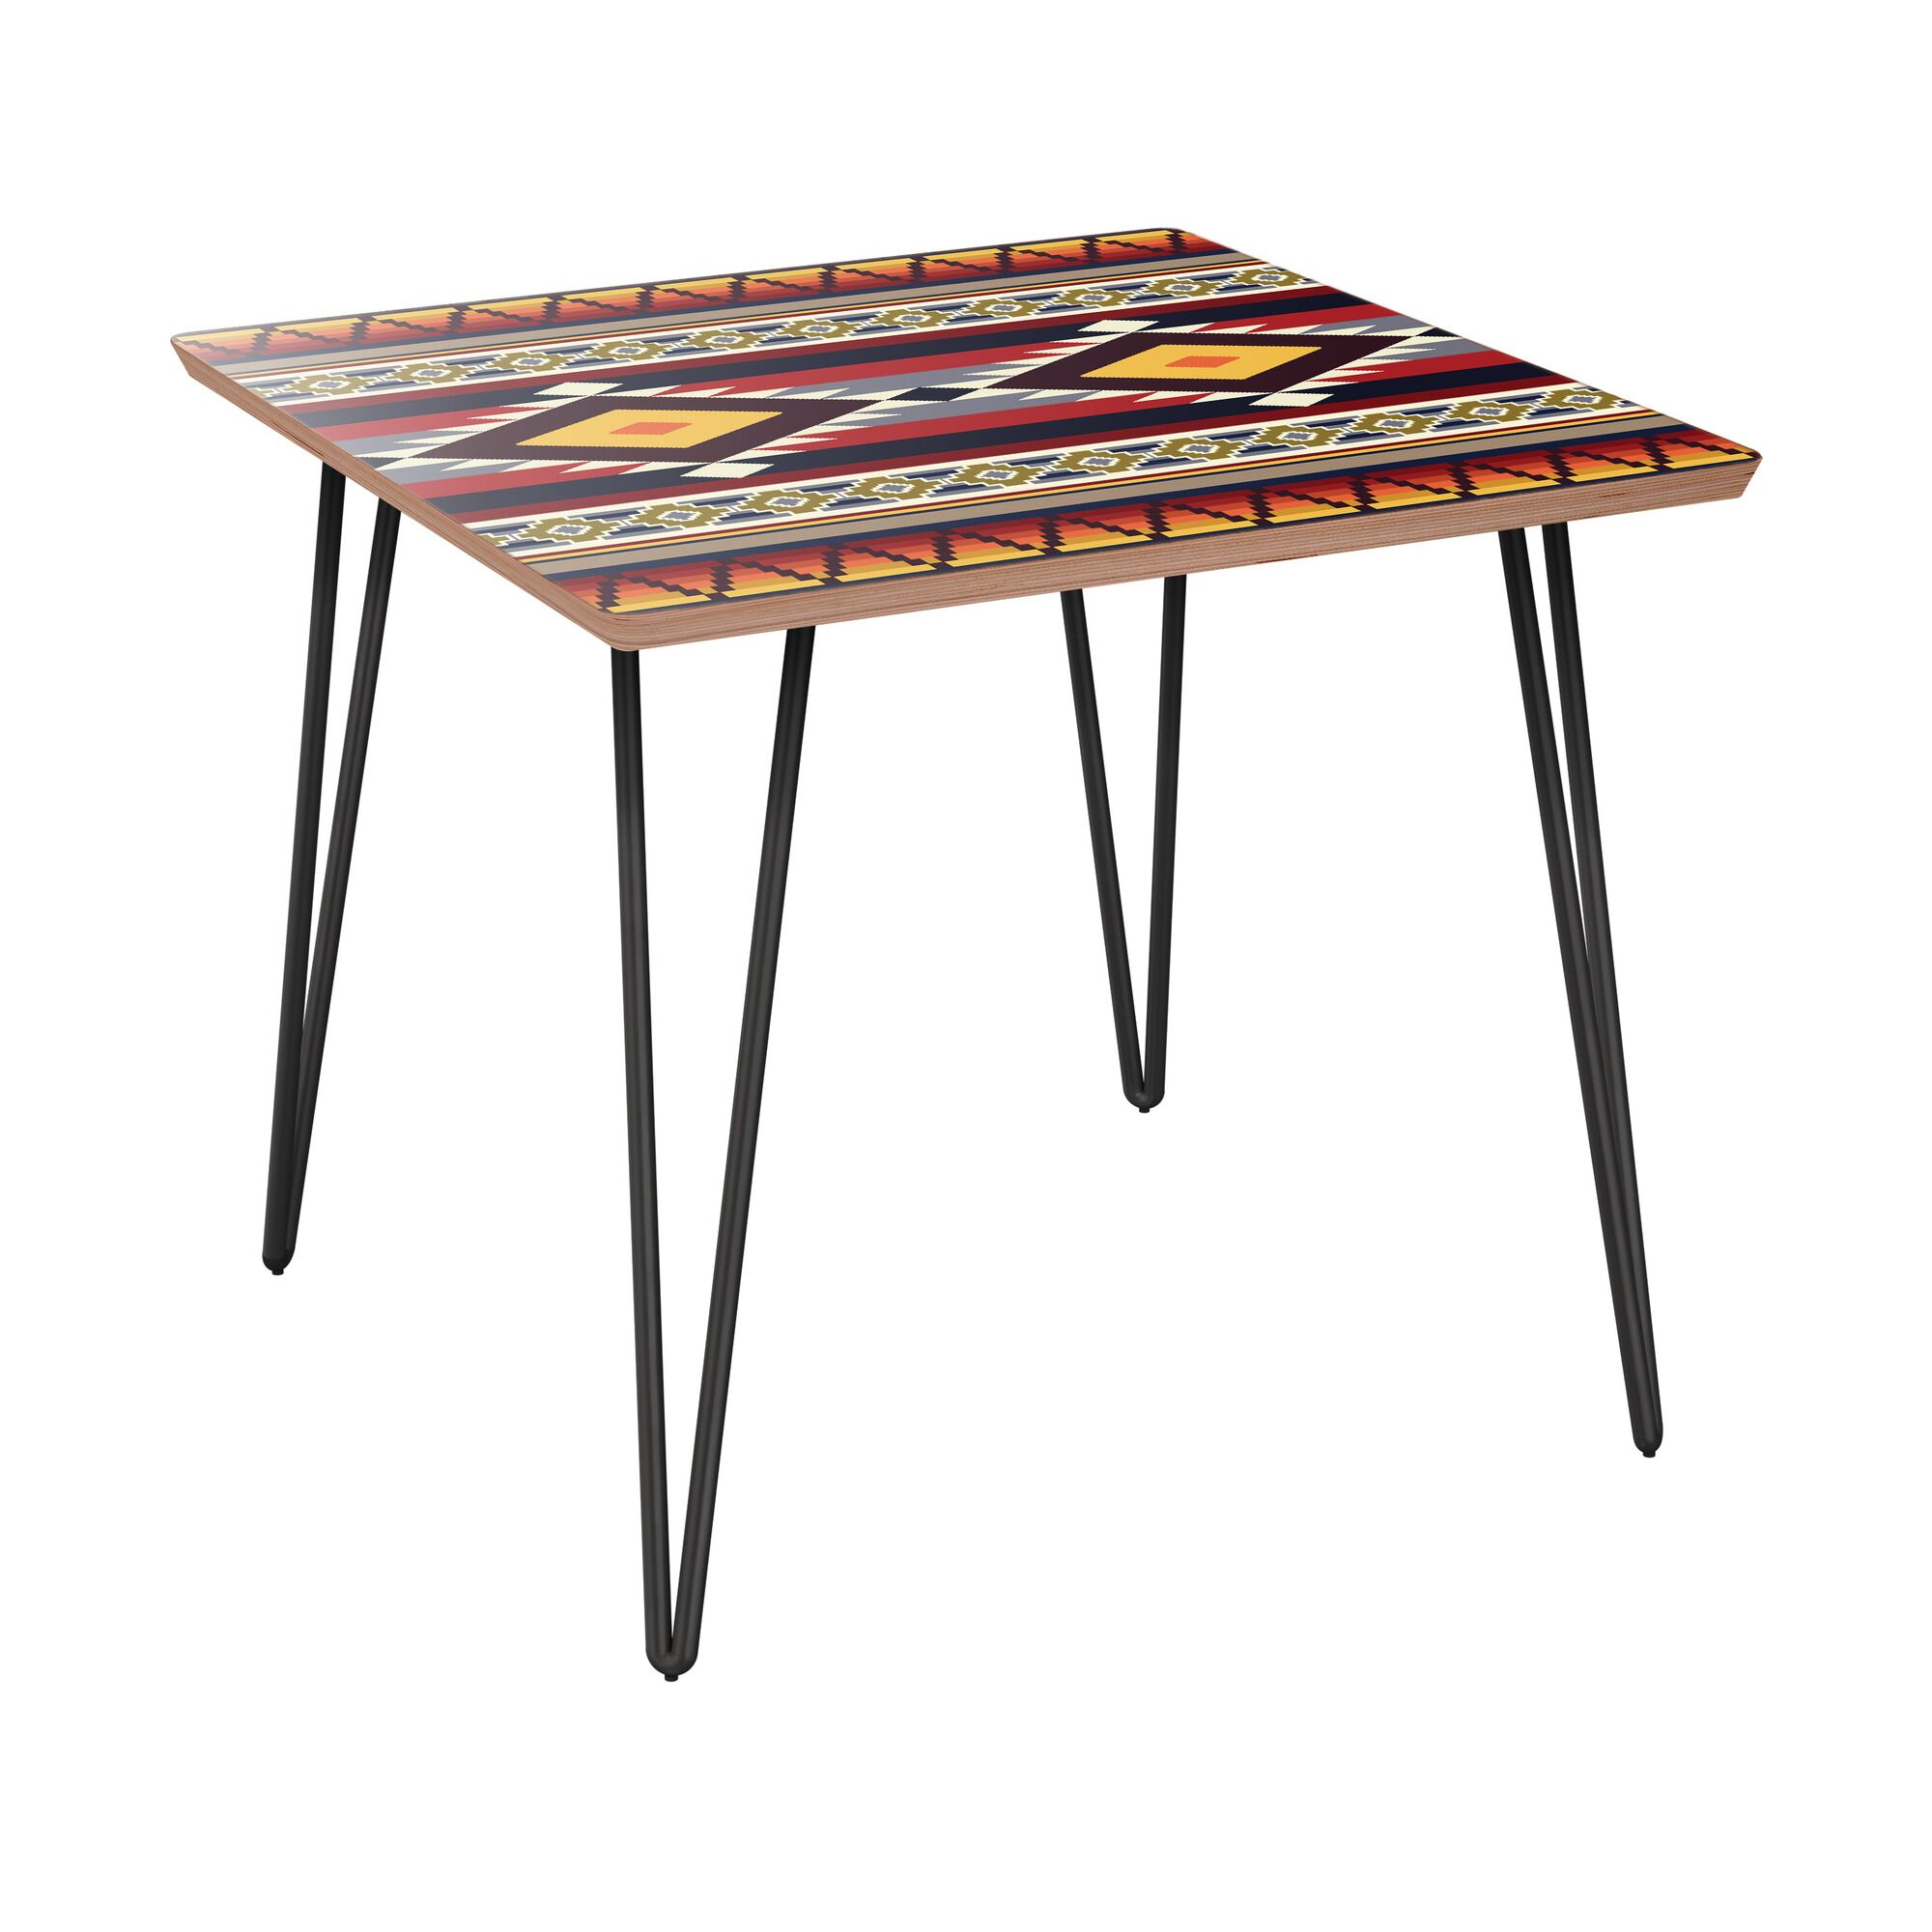 Ischua End Table Table Base Color: Black, Table Top Color: Walnut